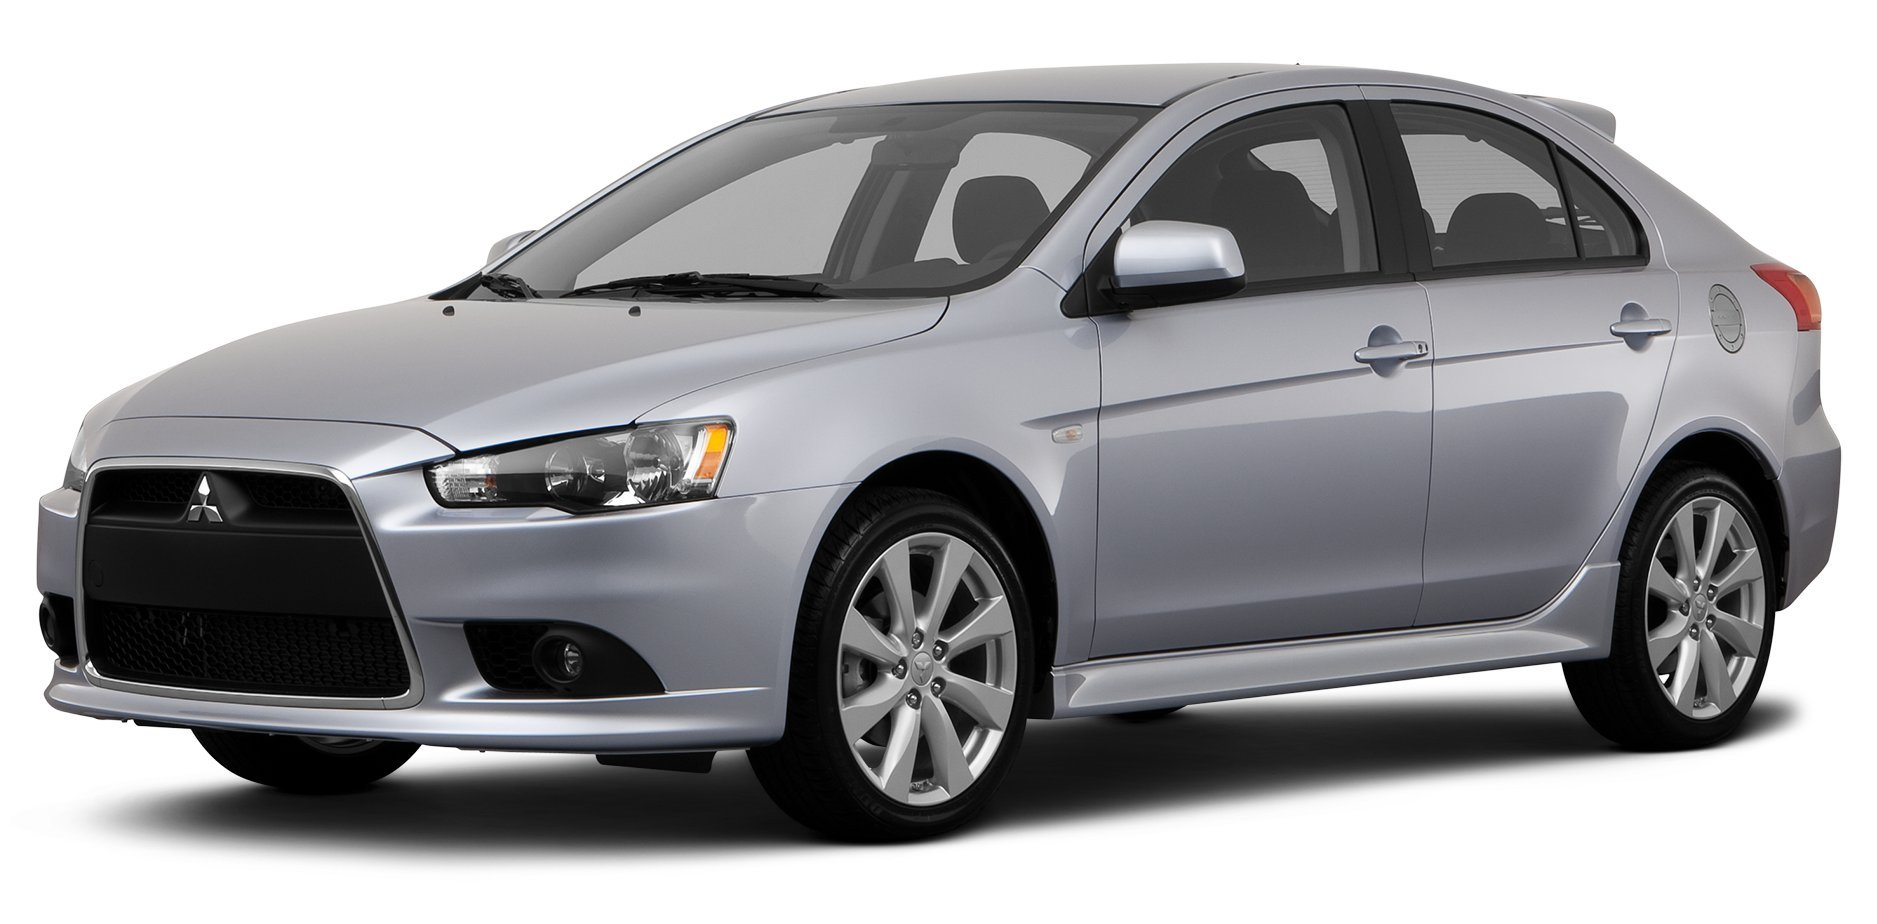 2013 honda insight reviews images and specs. Black Bedroom Furniture Sets. Home Design Ideas